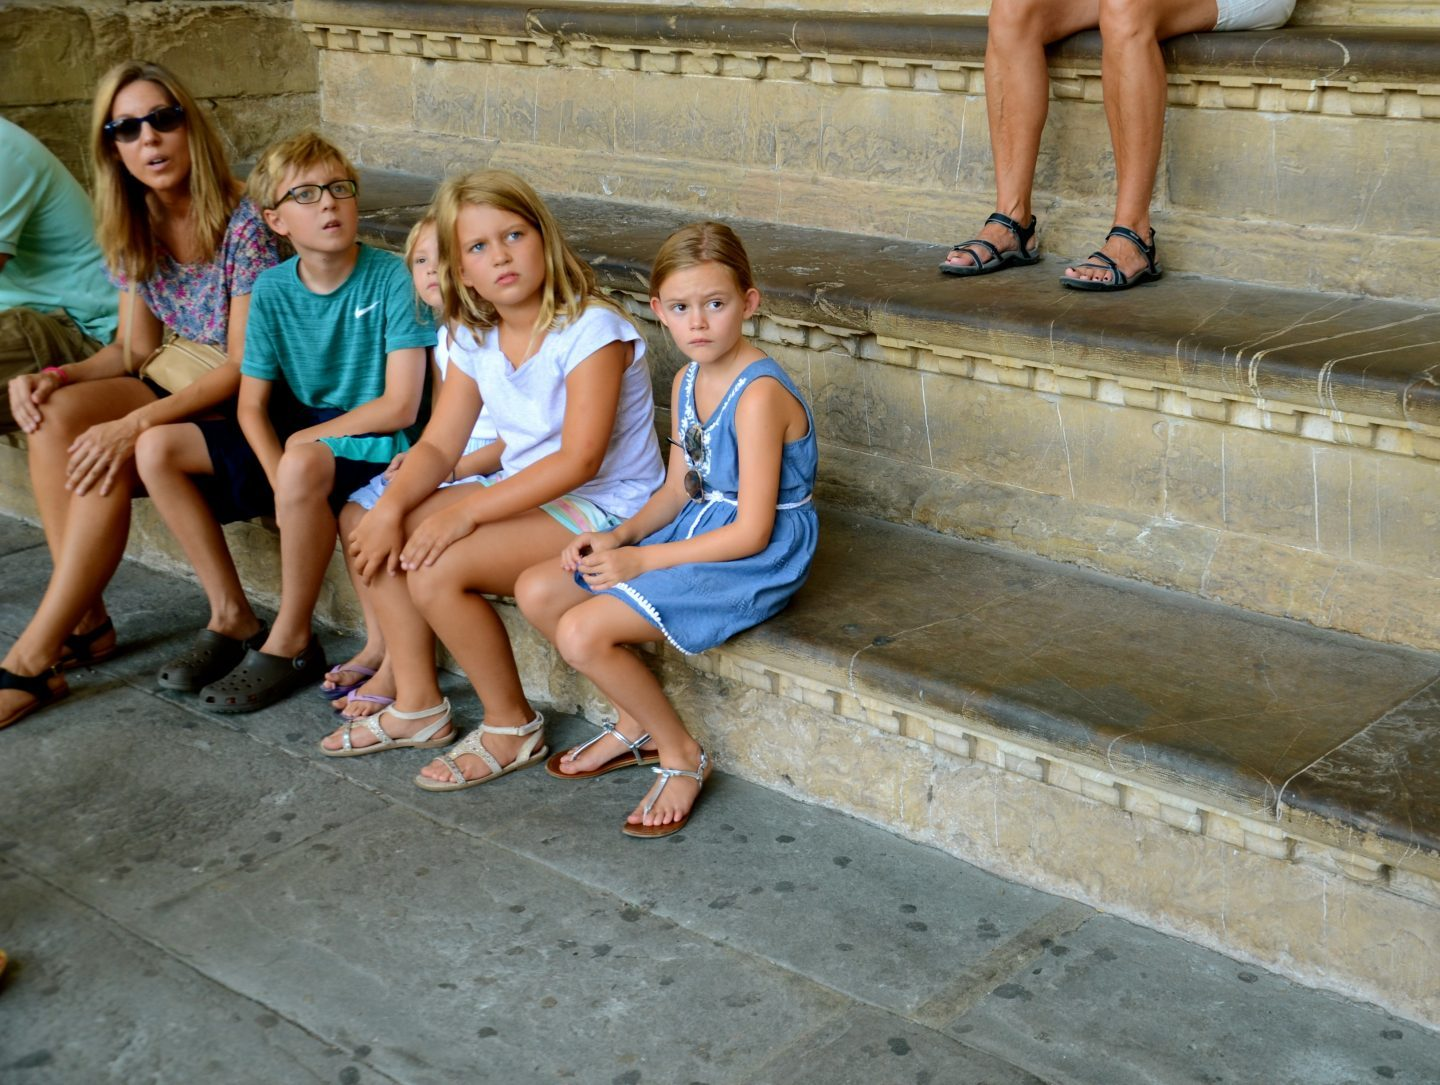 Sitting up the steps for a break in the pizza della signoria in Florence.